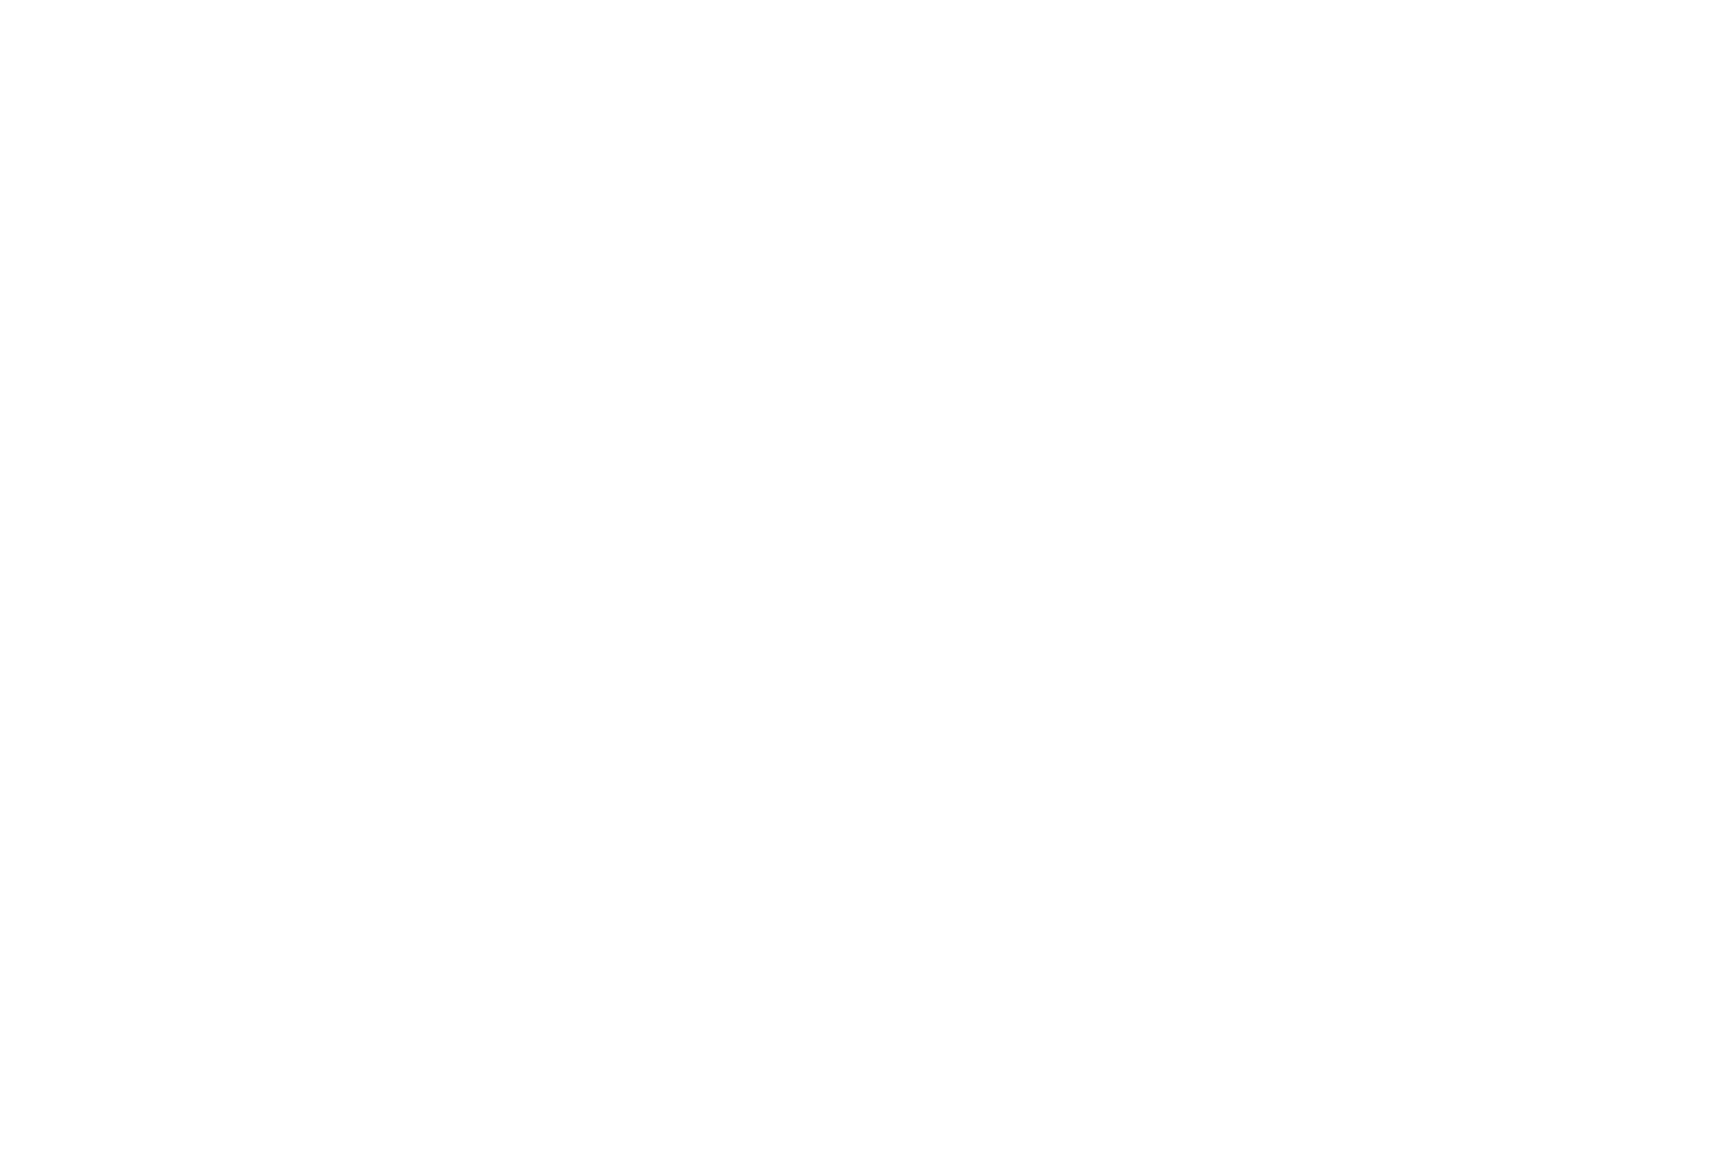 BEST FOREIGN FEATURE - Idyllwild International Festival of Cinema - 2019 copy